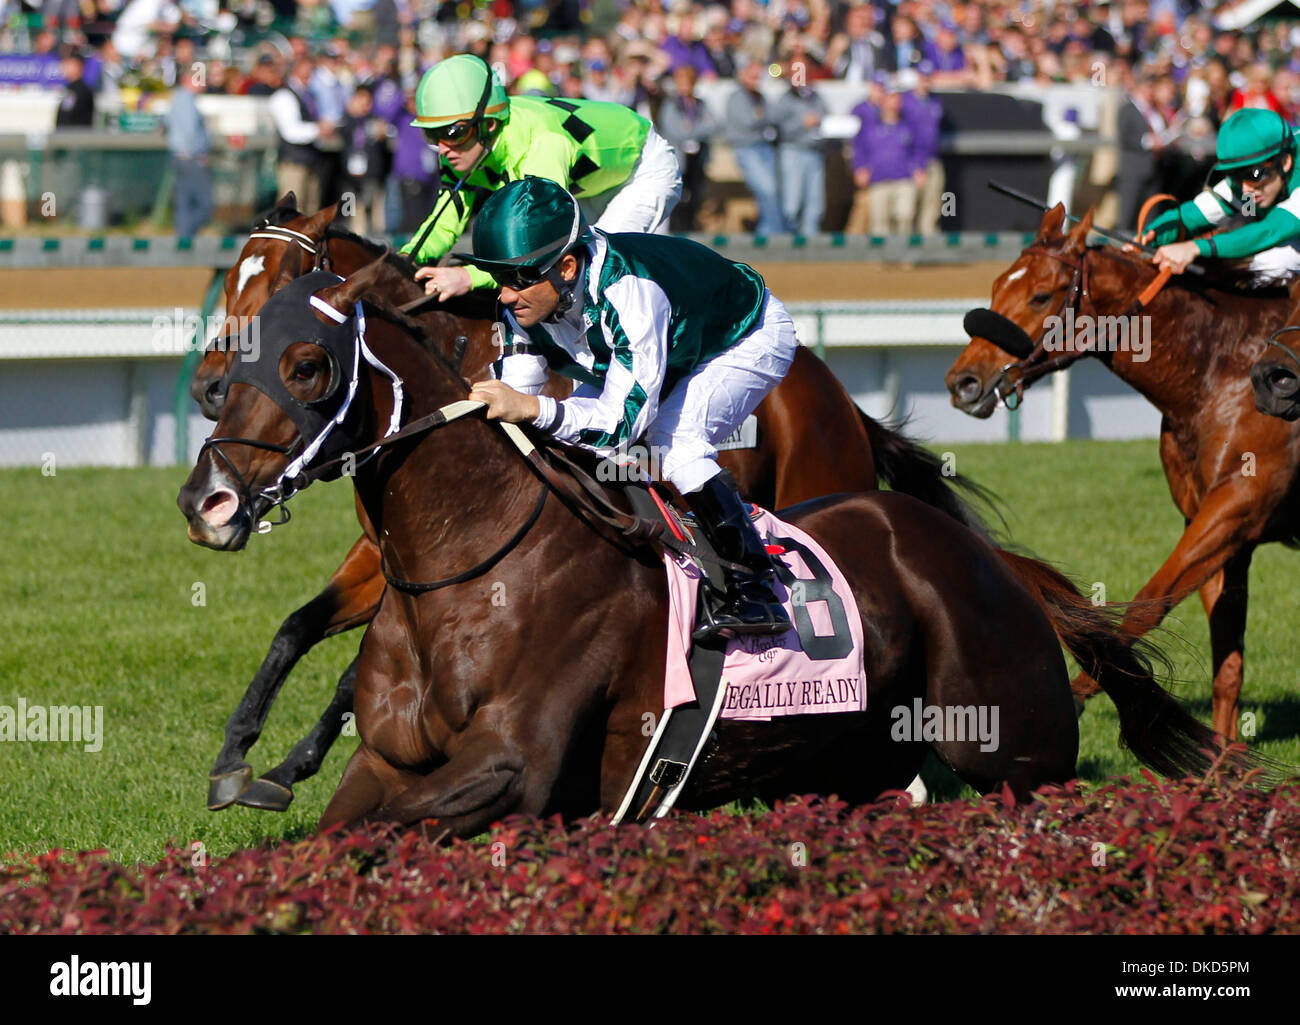 Nov. 5, 2011 - Louisville, KY, USA - Regally Ready,8, with Corey Nakatani up won the Turf Sprint Division during Stock Photo